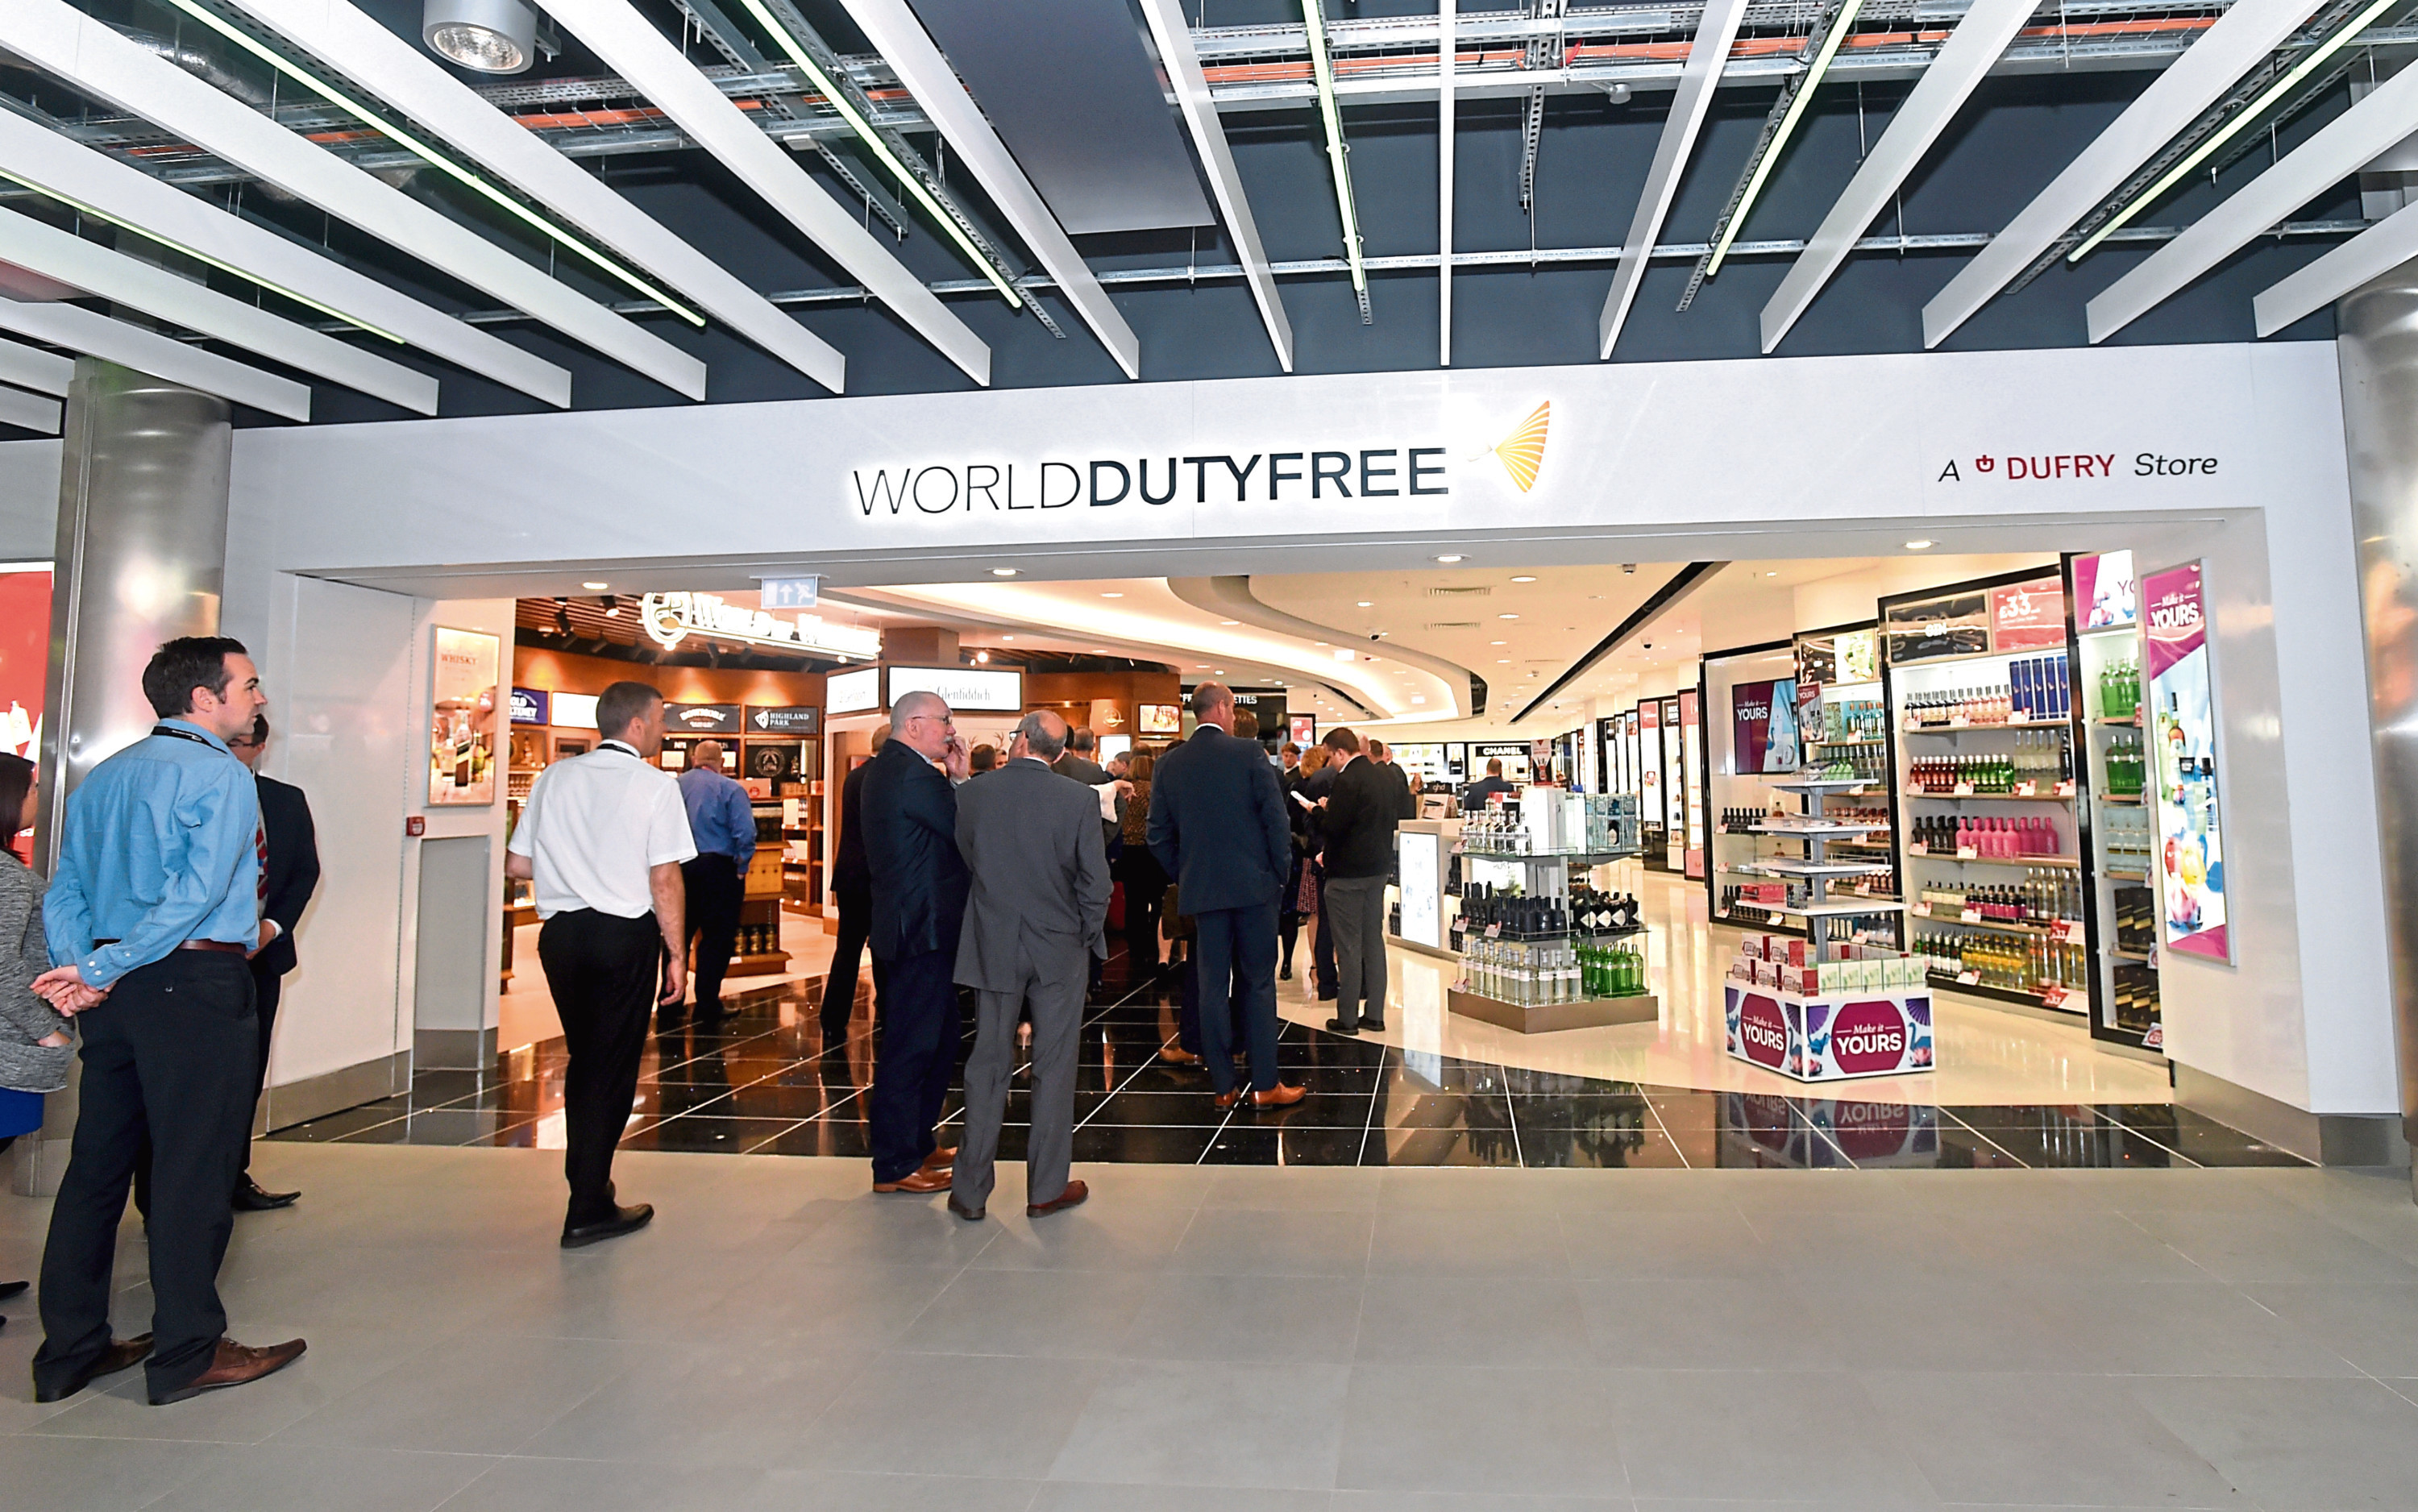 The new, expanded, duty free area at Aberdeen airport.